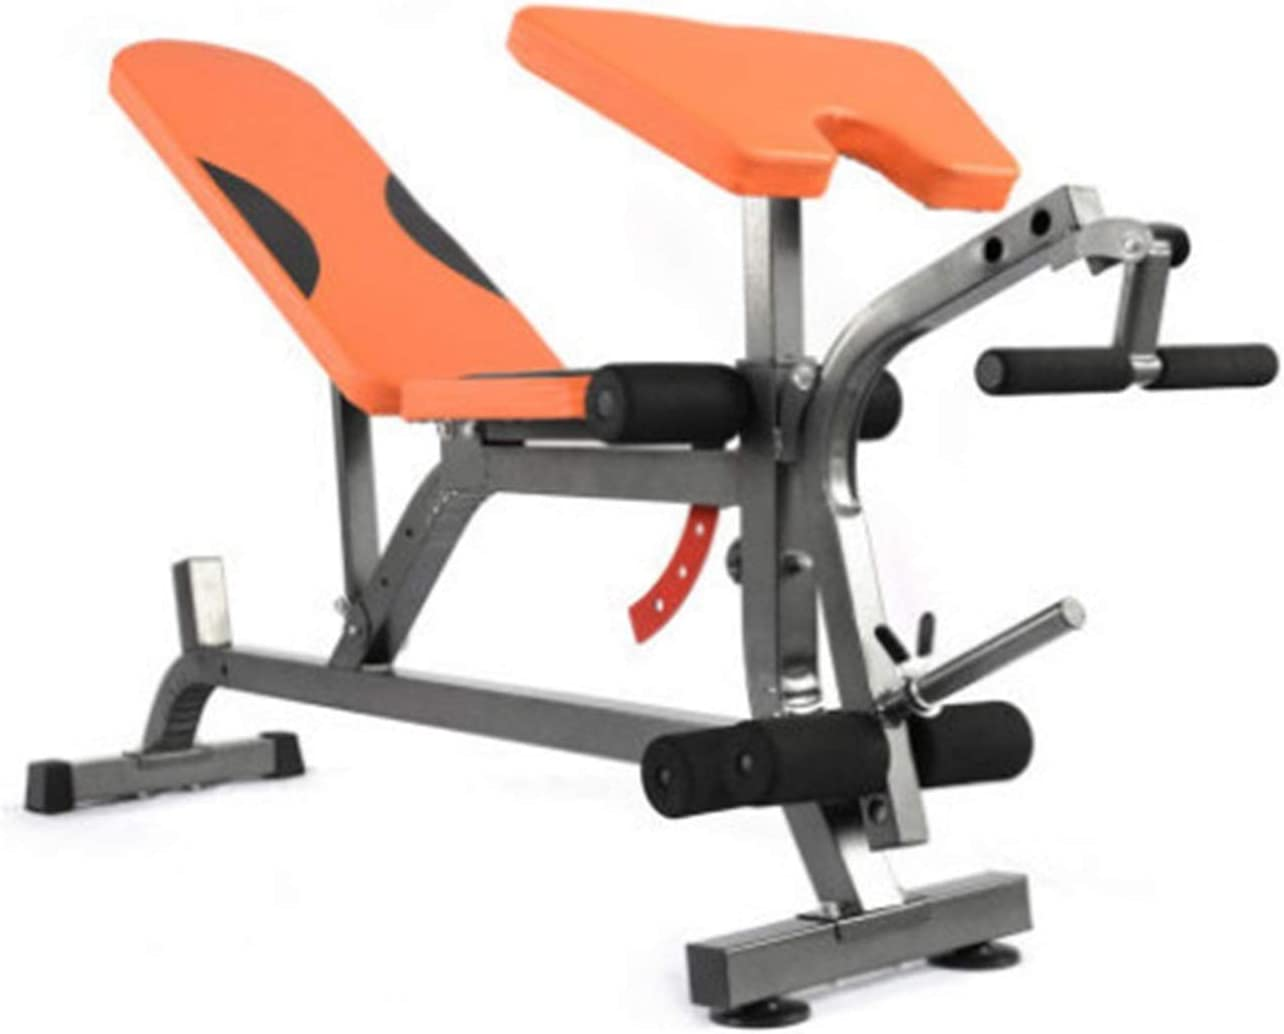 Full Body Exercise High quality Fitness Bench Dumbbell 4 Ranking TOP16 Stool Multi-F Levels